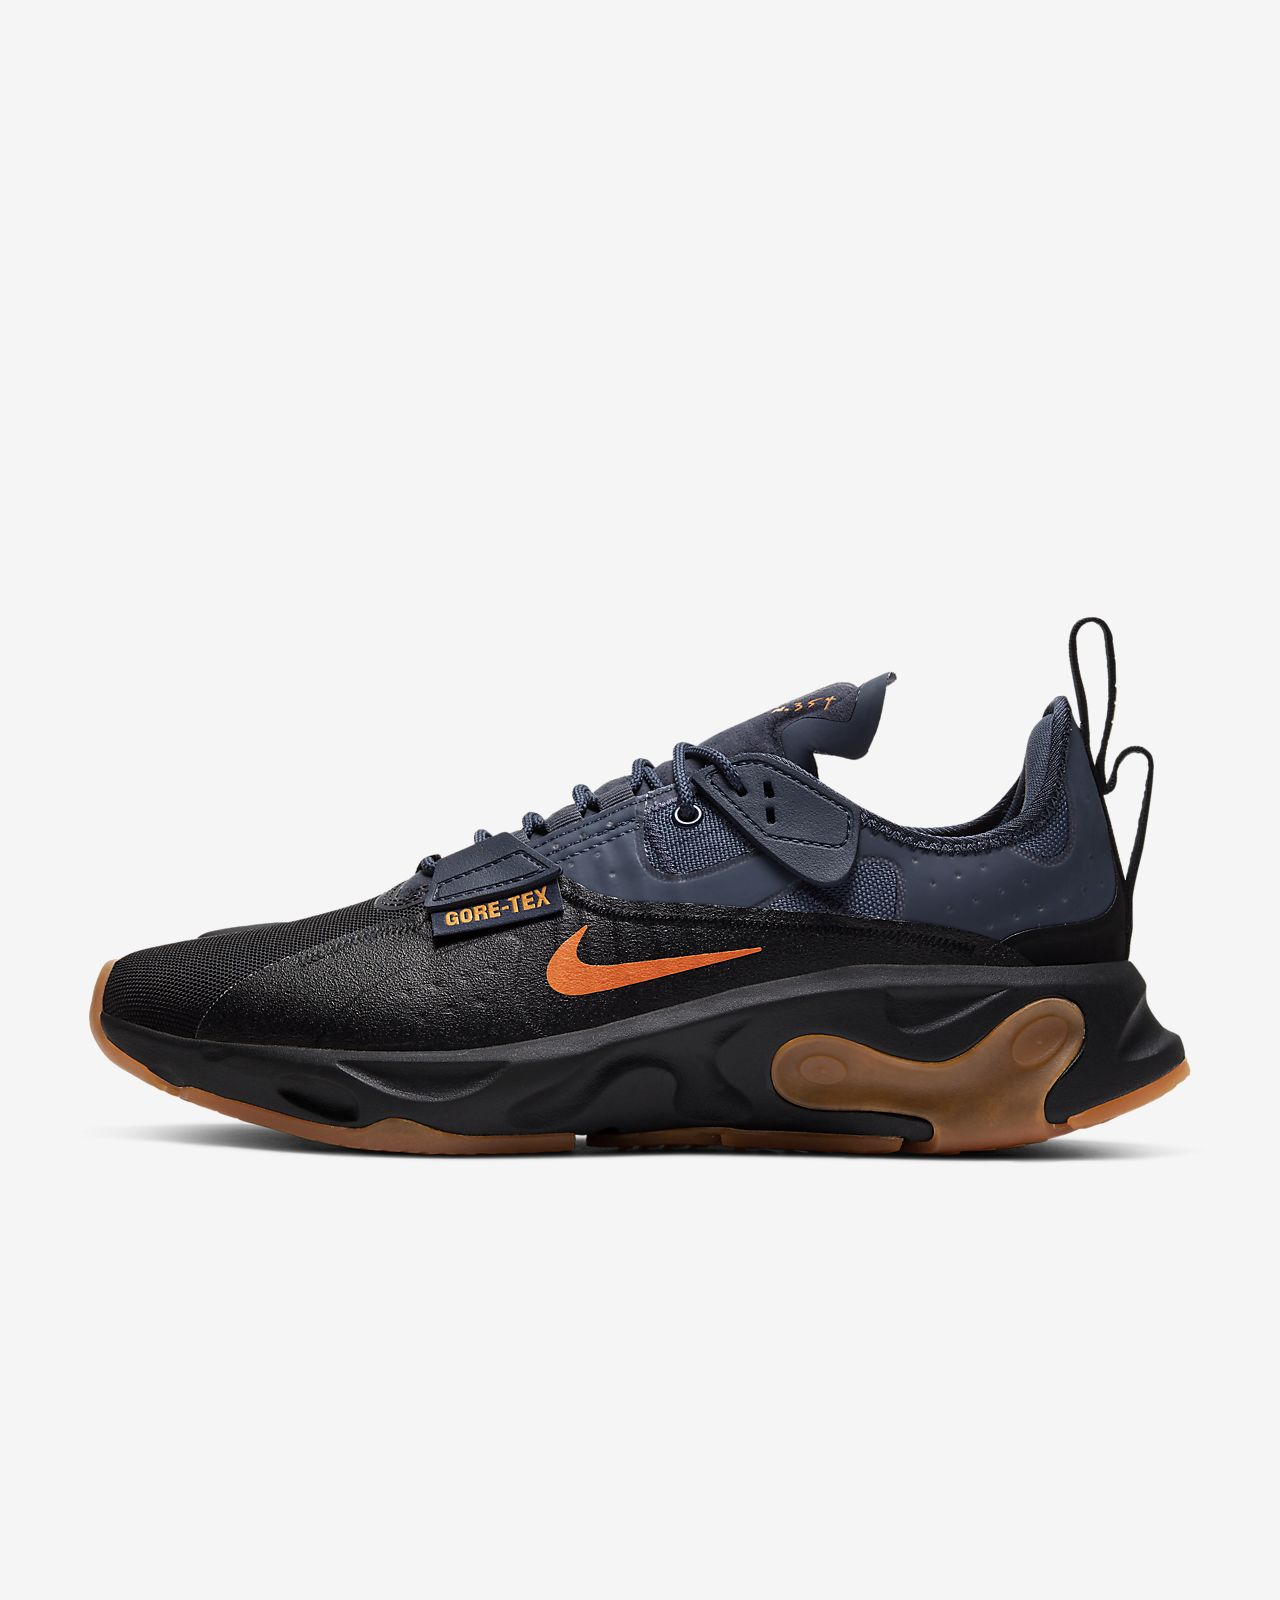 Nike React Type GTX Men's Shoe